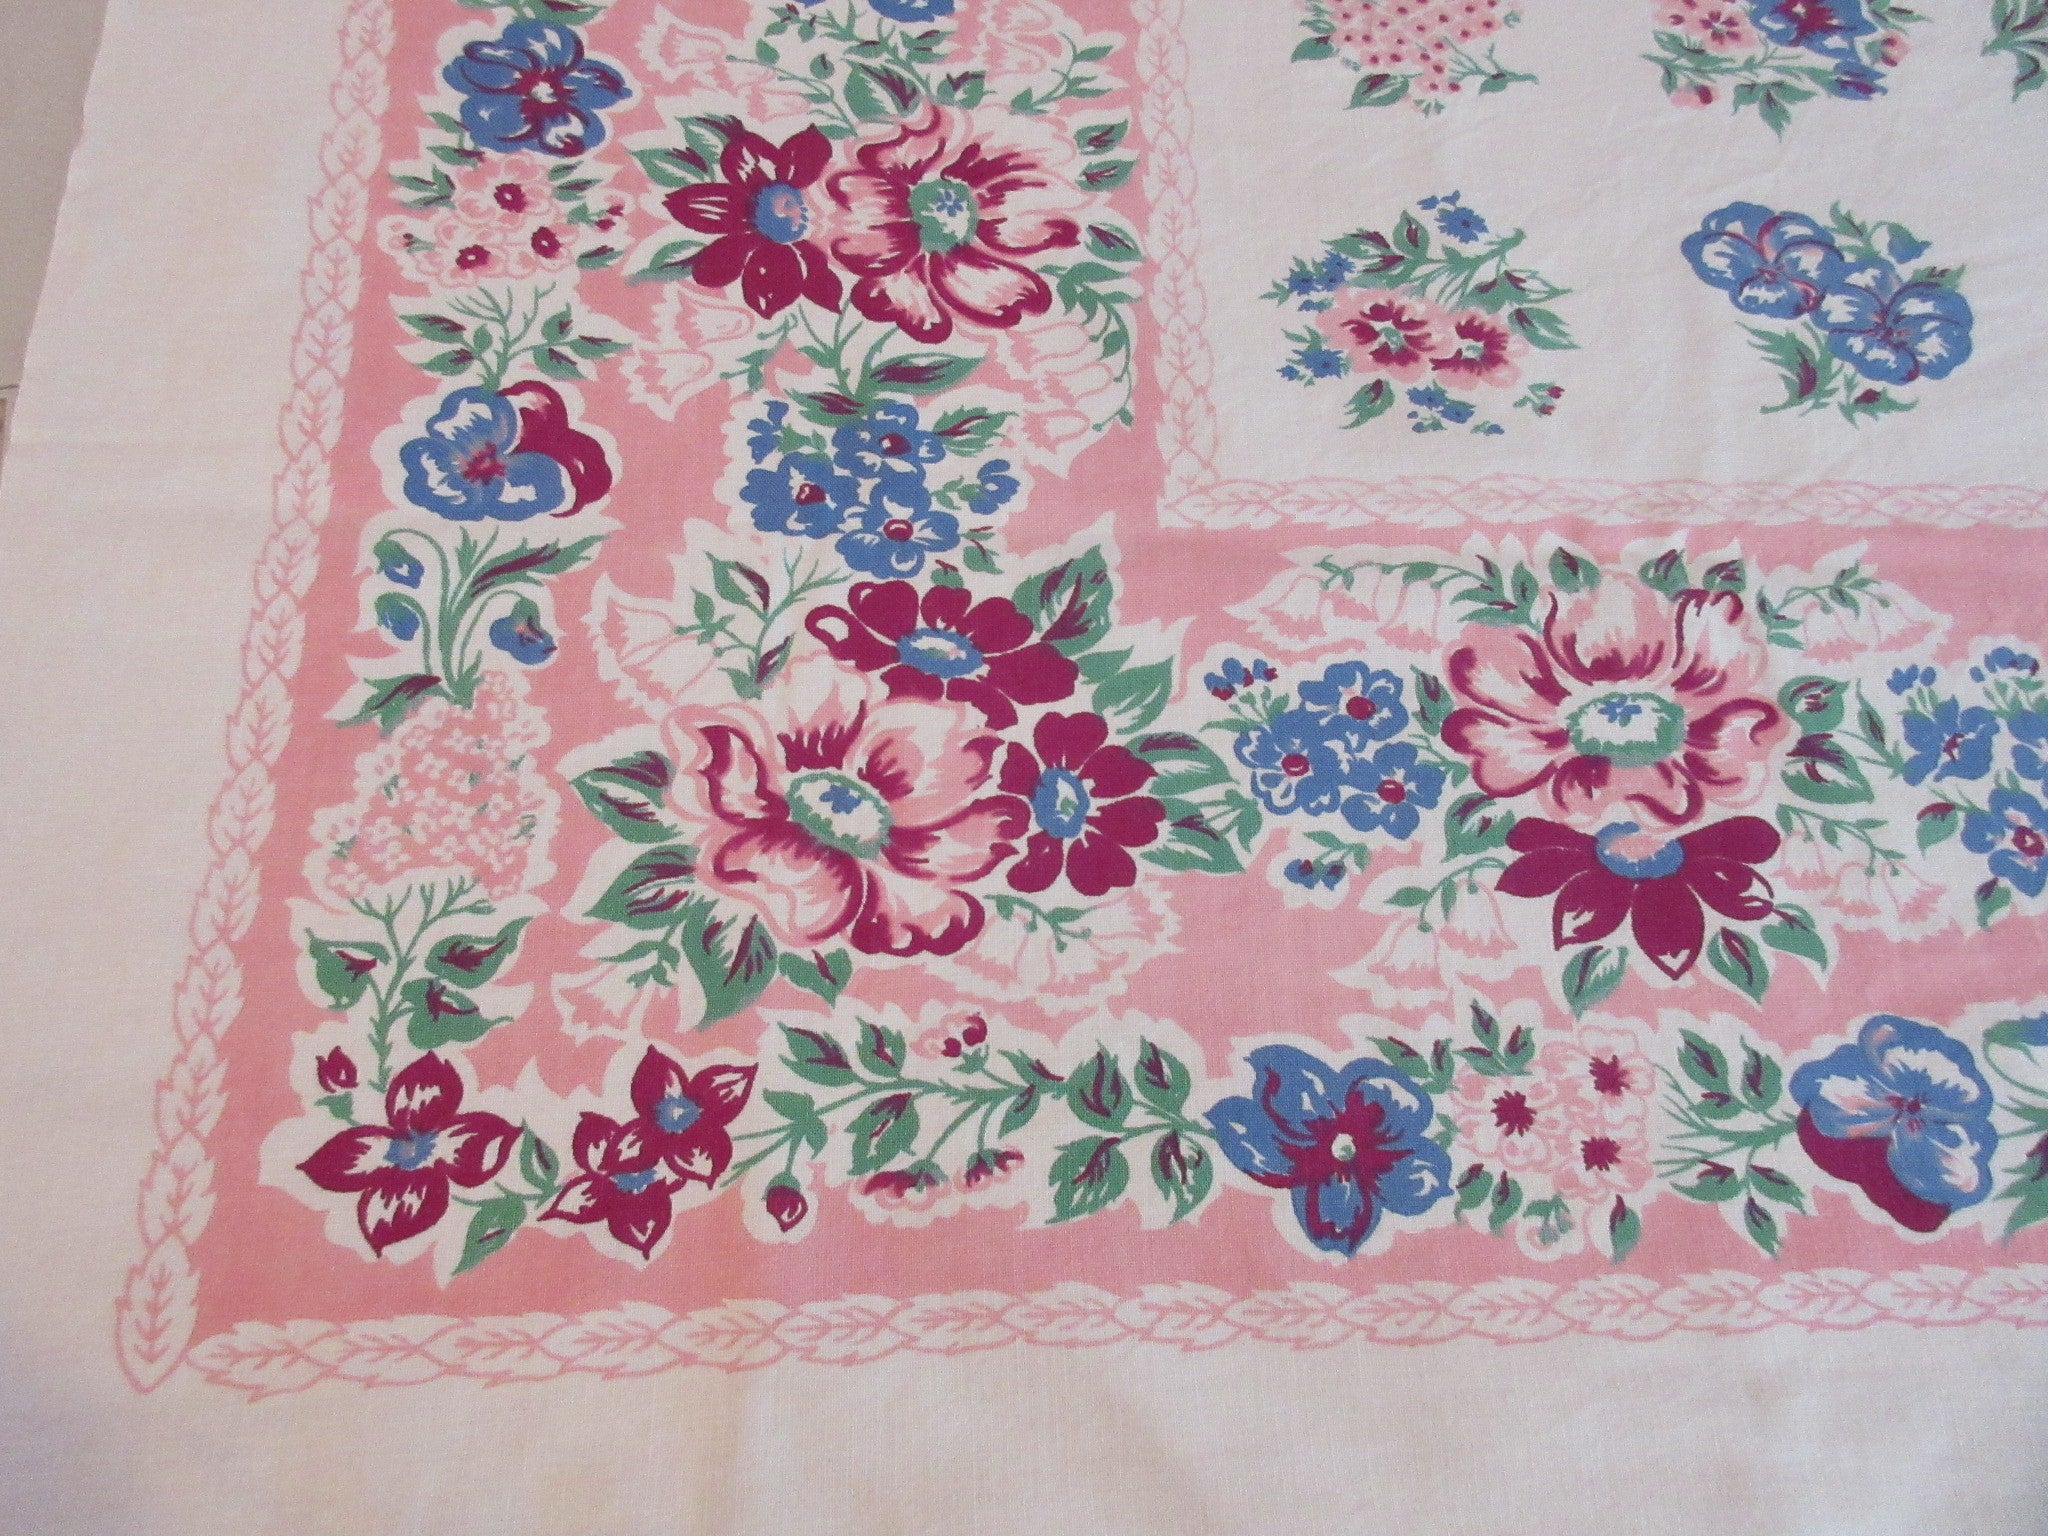 Blue Magenta Peonies on Pink Cutter? Floral Vintage Printed Tablecloth (51 X 45)